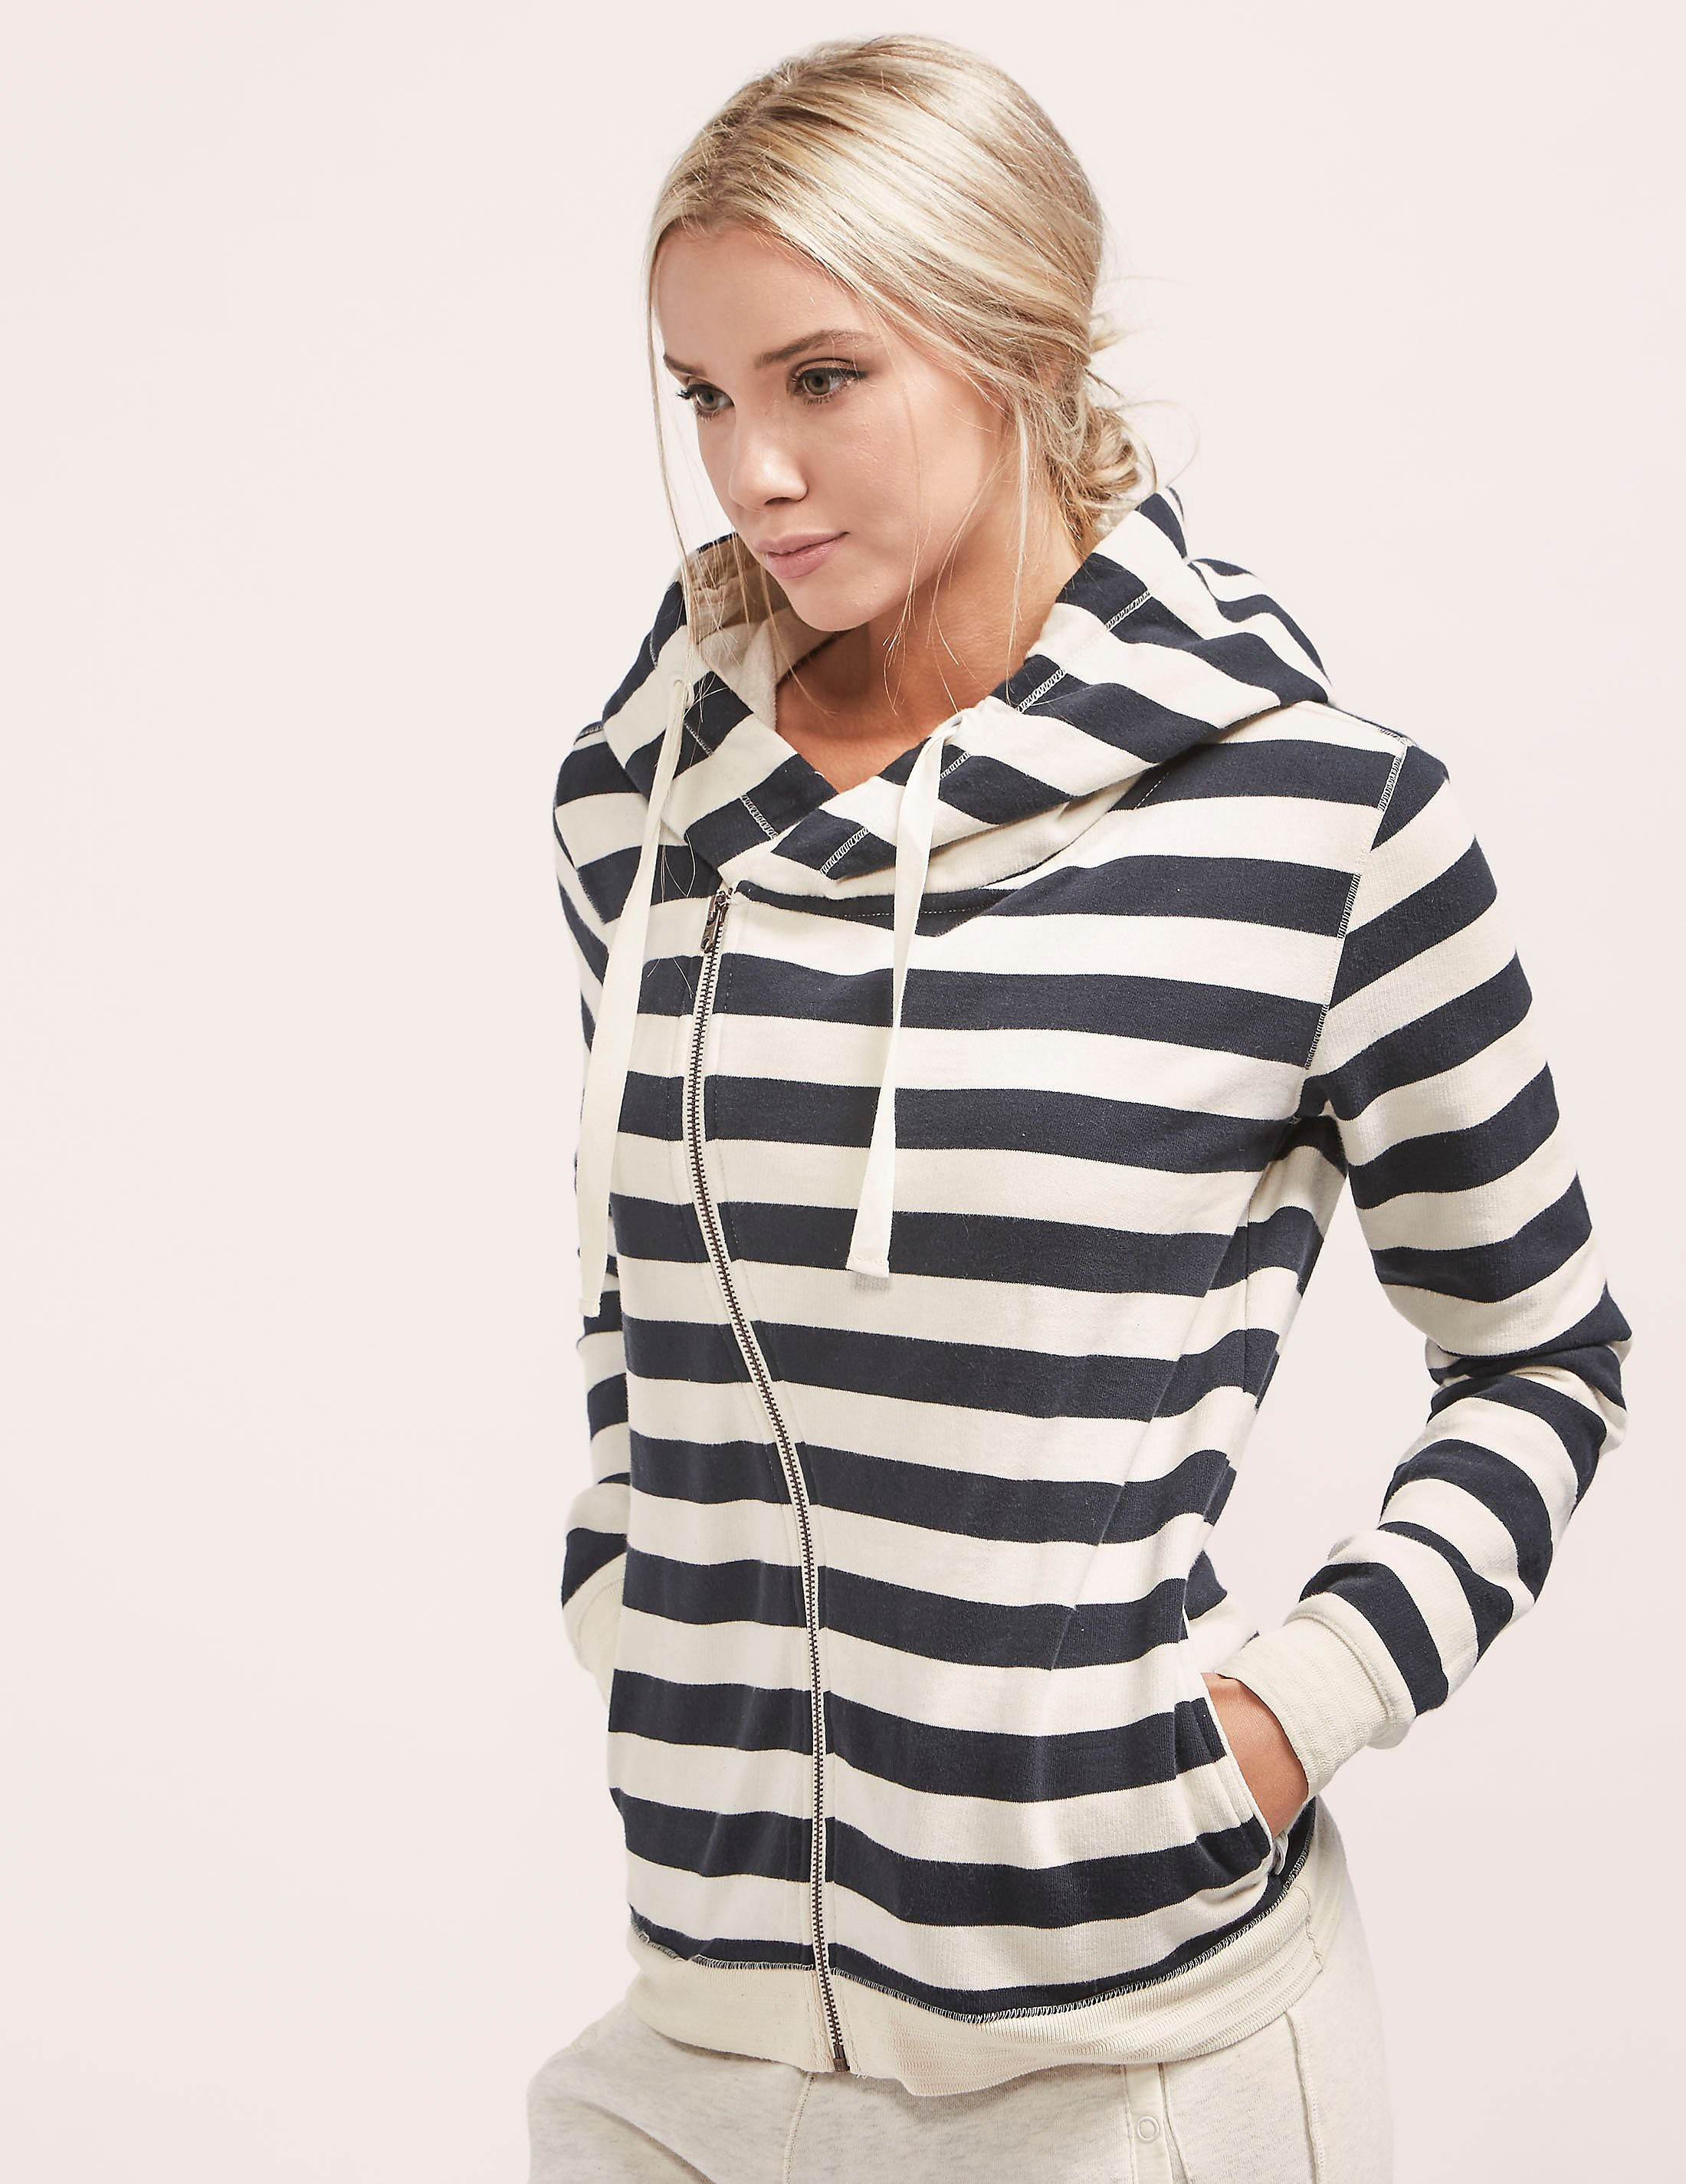 Maison Scotch Home Alone Zip Hoody